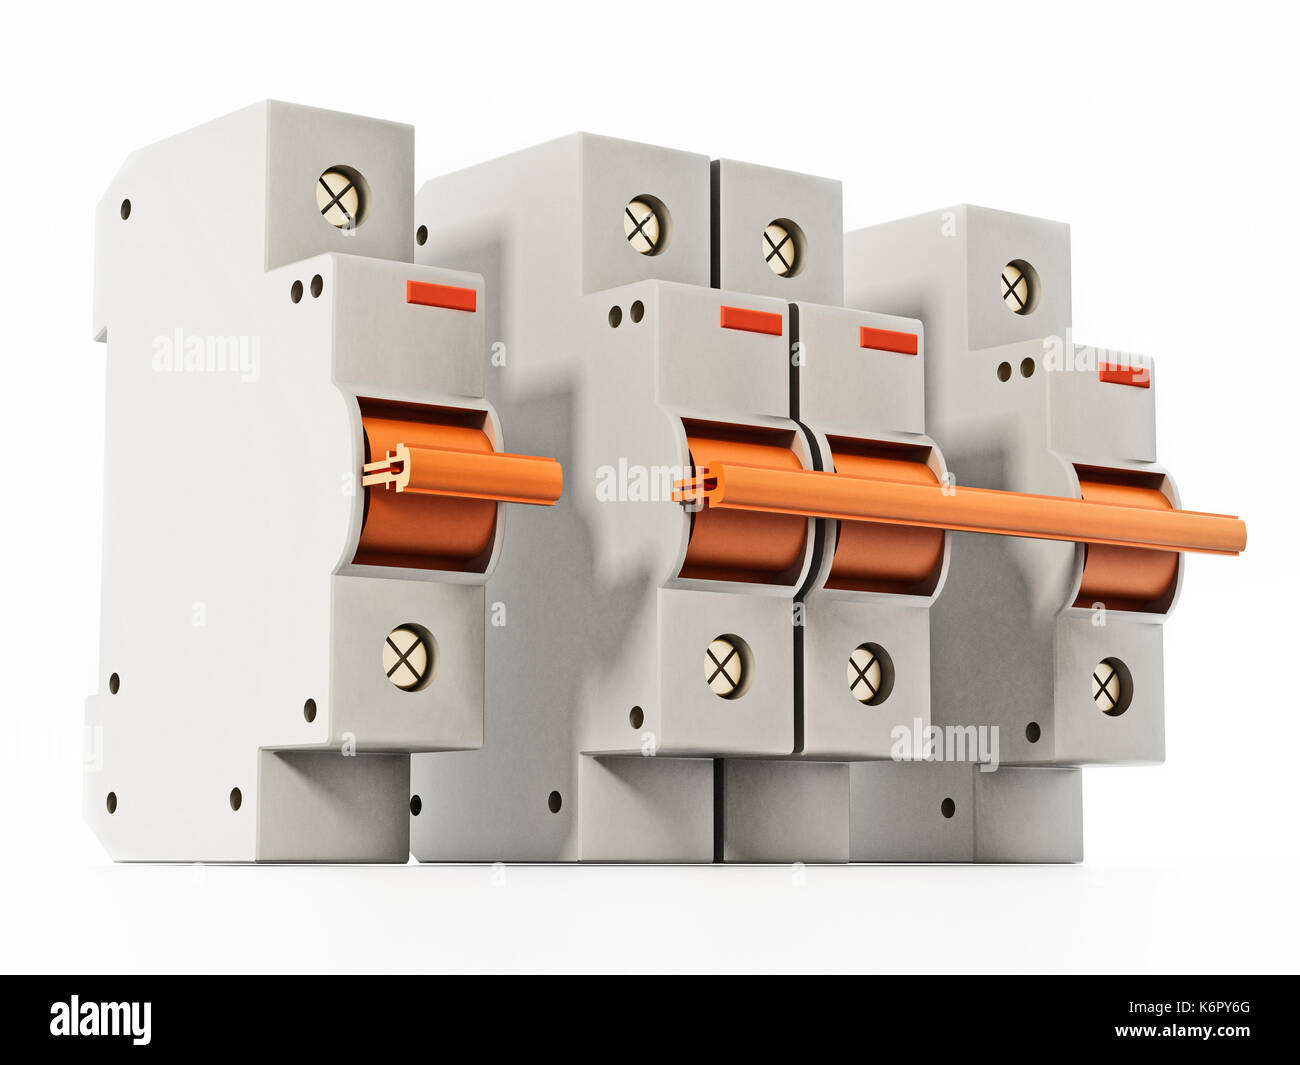 Fuse Box And Meter Stock Photos Images O Isolated On White Background 3d Illustration Image